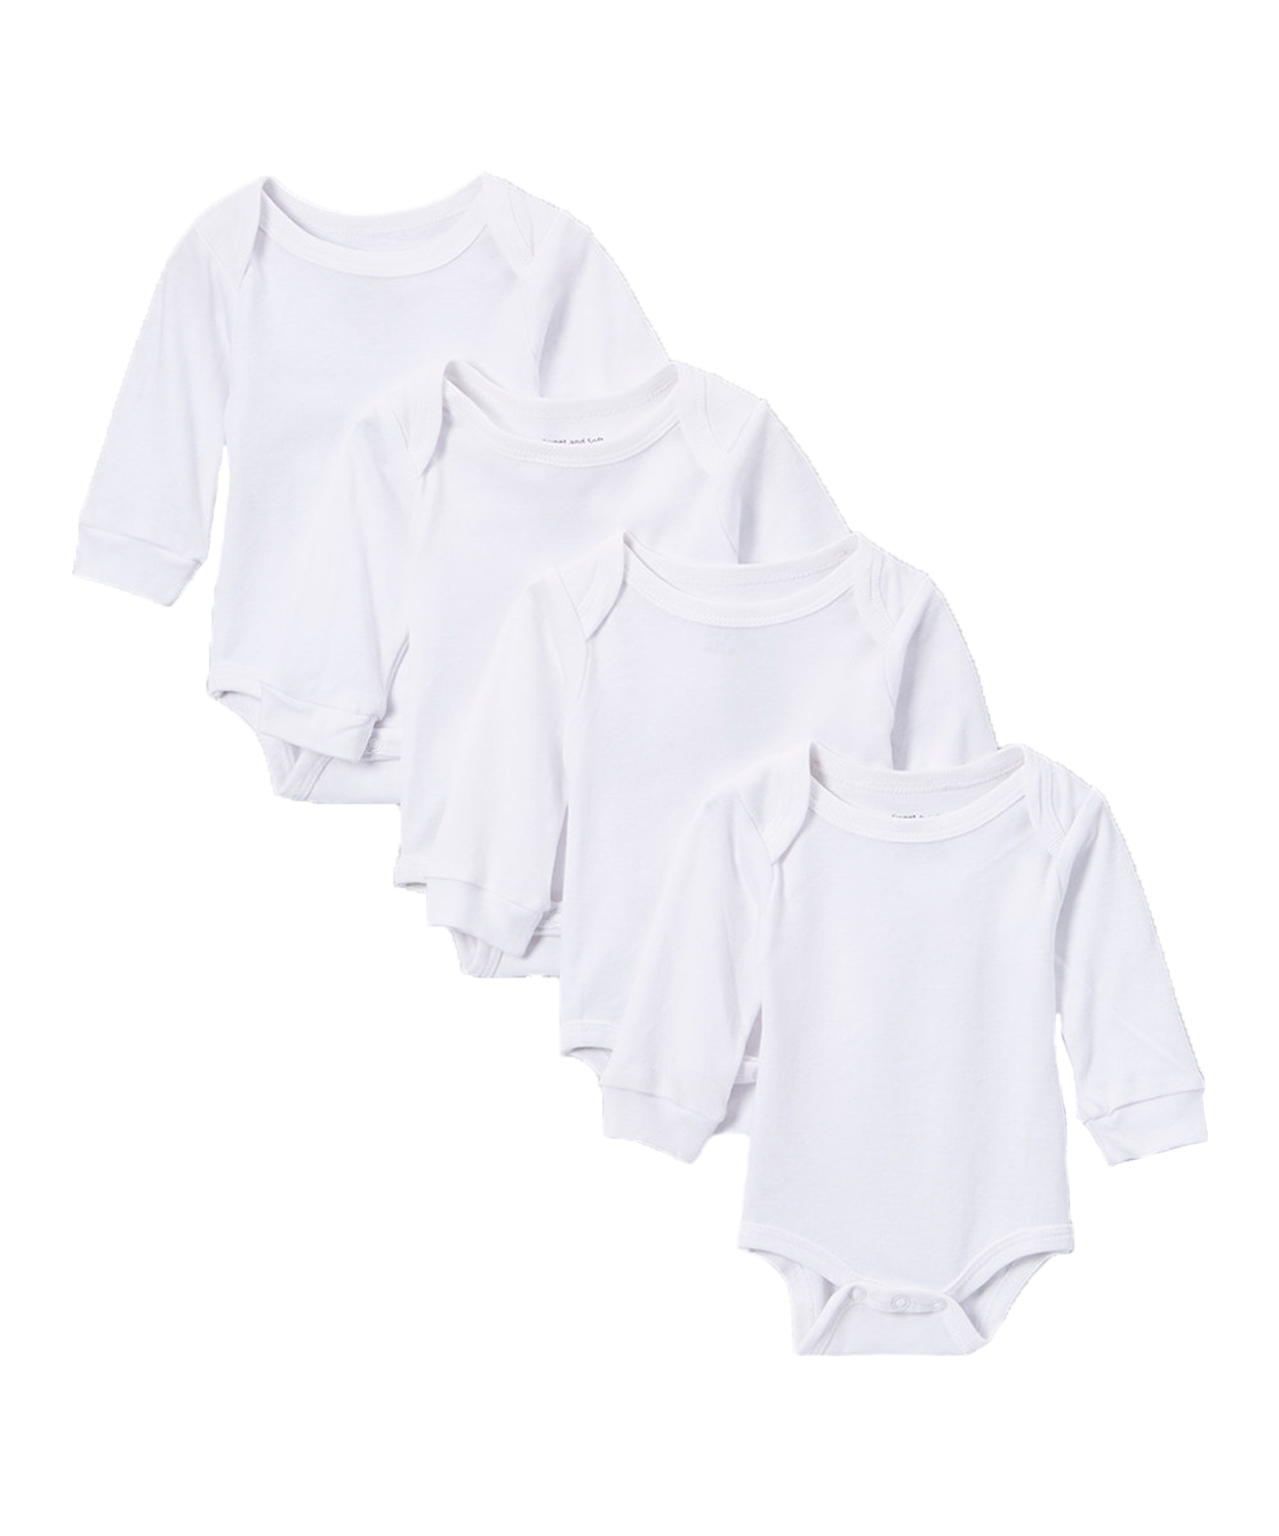 If you feel like using the plain onesies to bling out and gift or sell or use for your own kids, these white onesies are great for that. Or if you just need a simple affordable piece of clothing for your baby, these work for that as well/5(K).